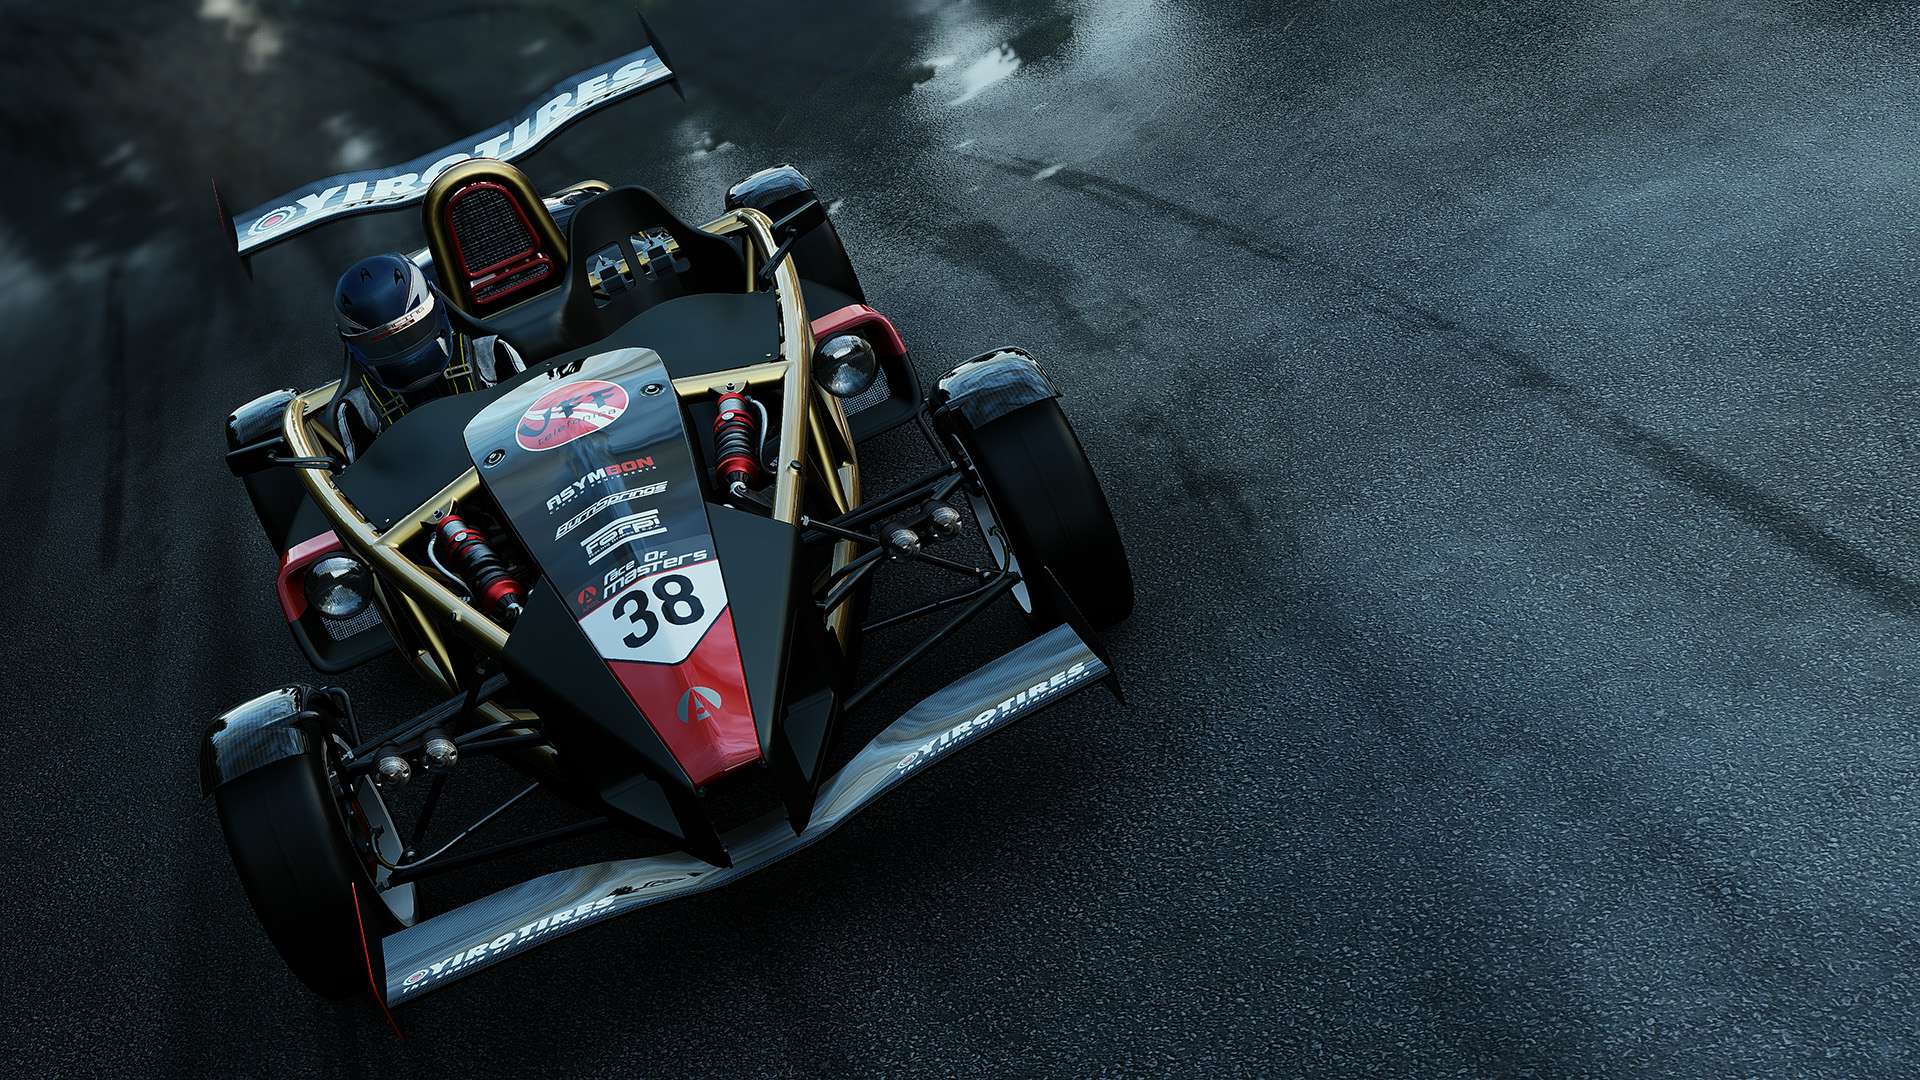 898529ecd5d Project CARS – Full List of Supported Wheels, Pedals & Controllers ...